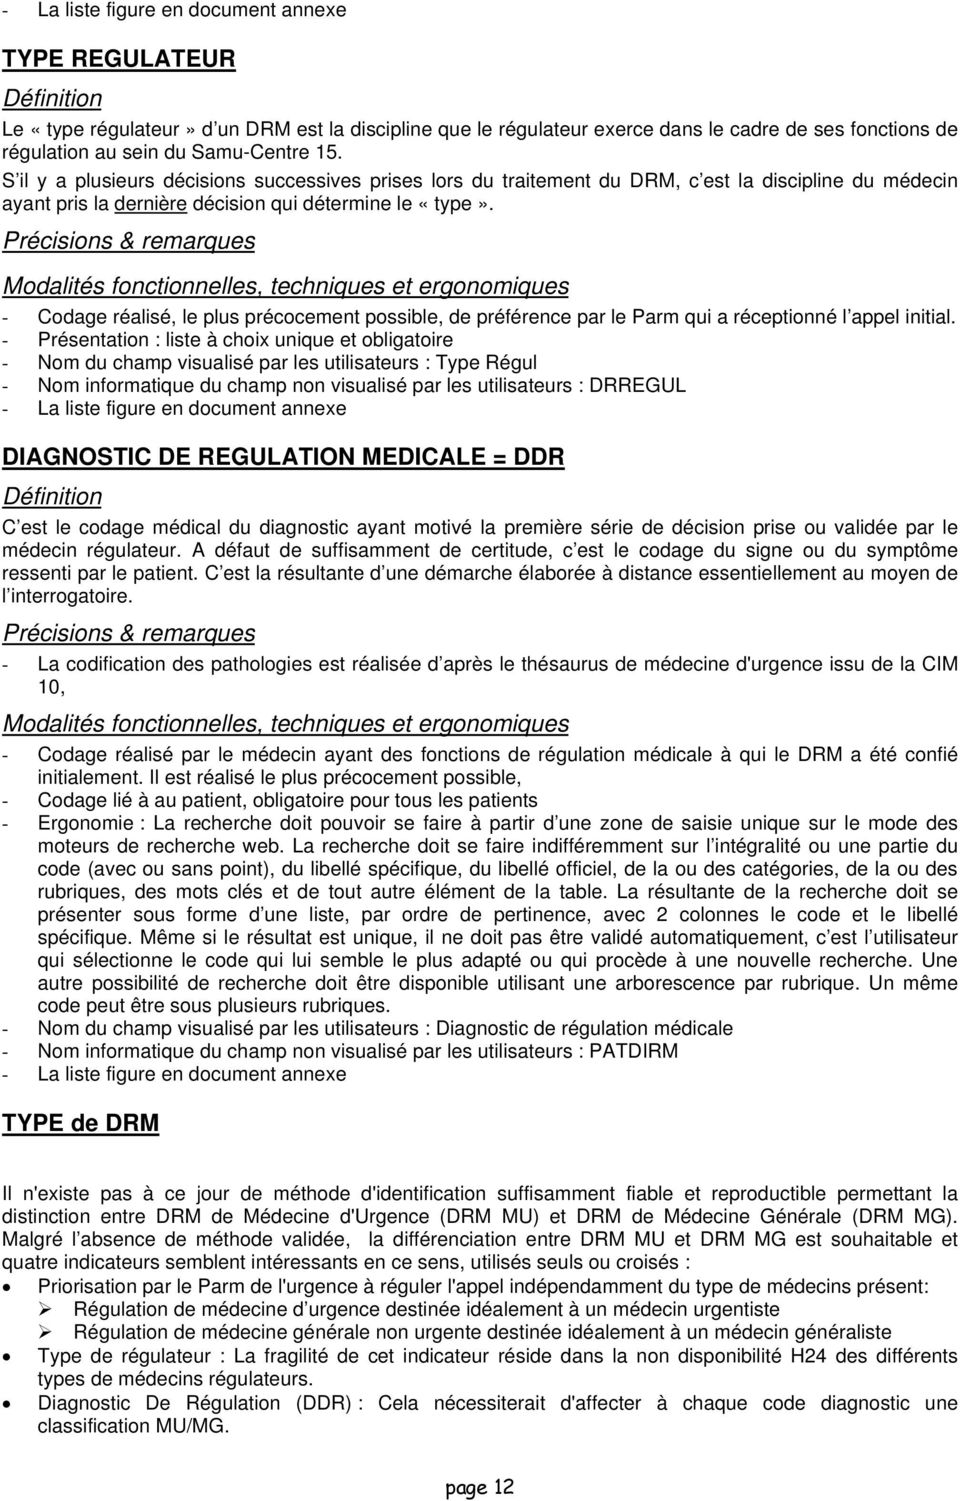 Activite Des Samu Centre 15 Definitions Standardisation Des